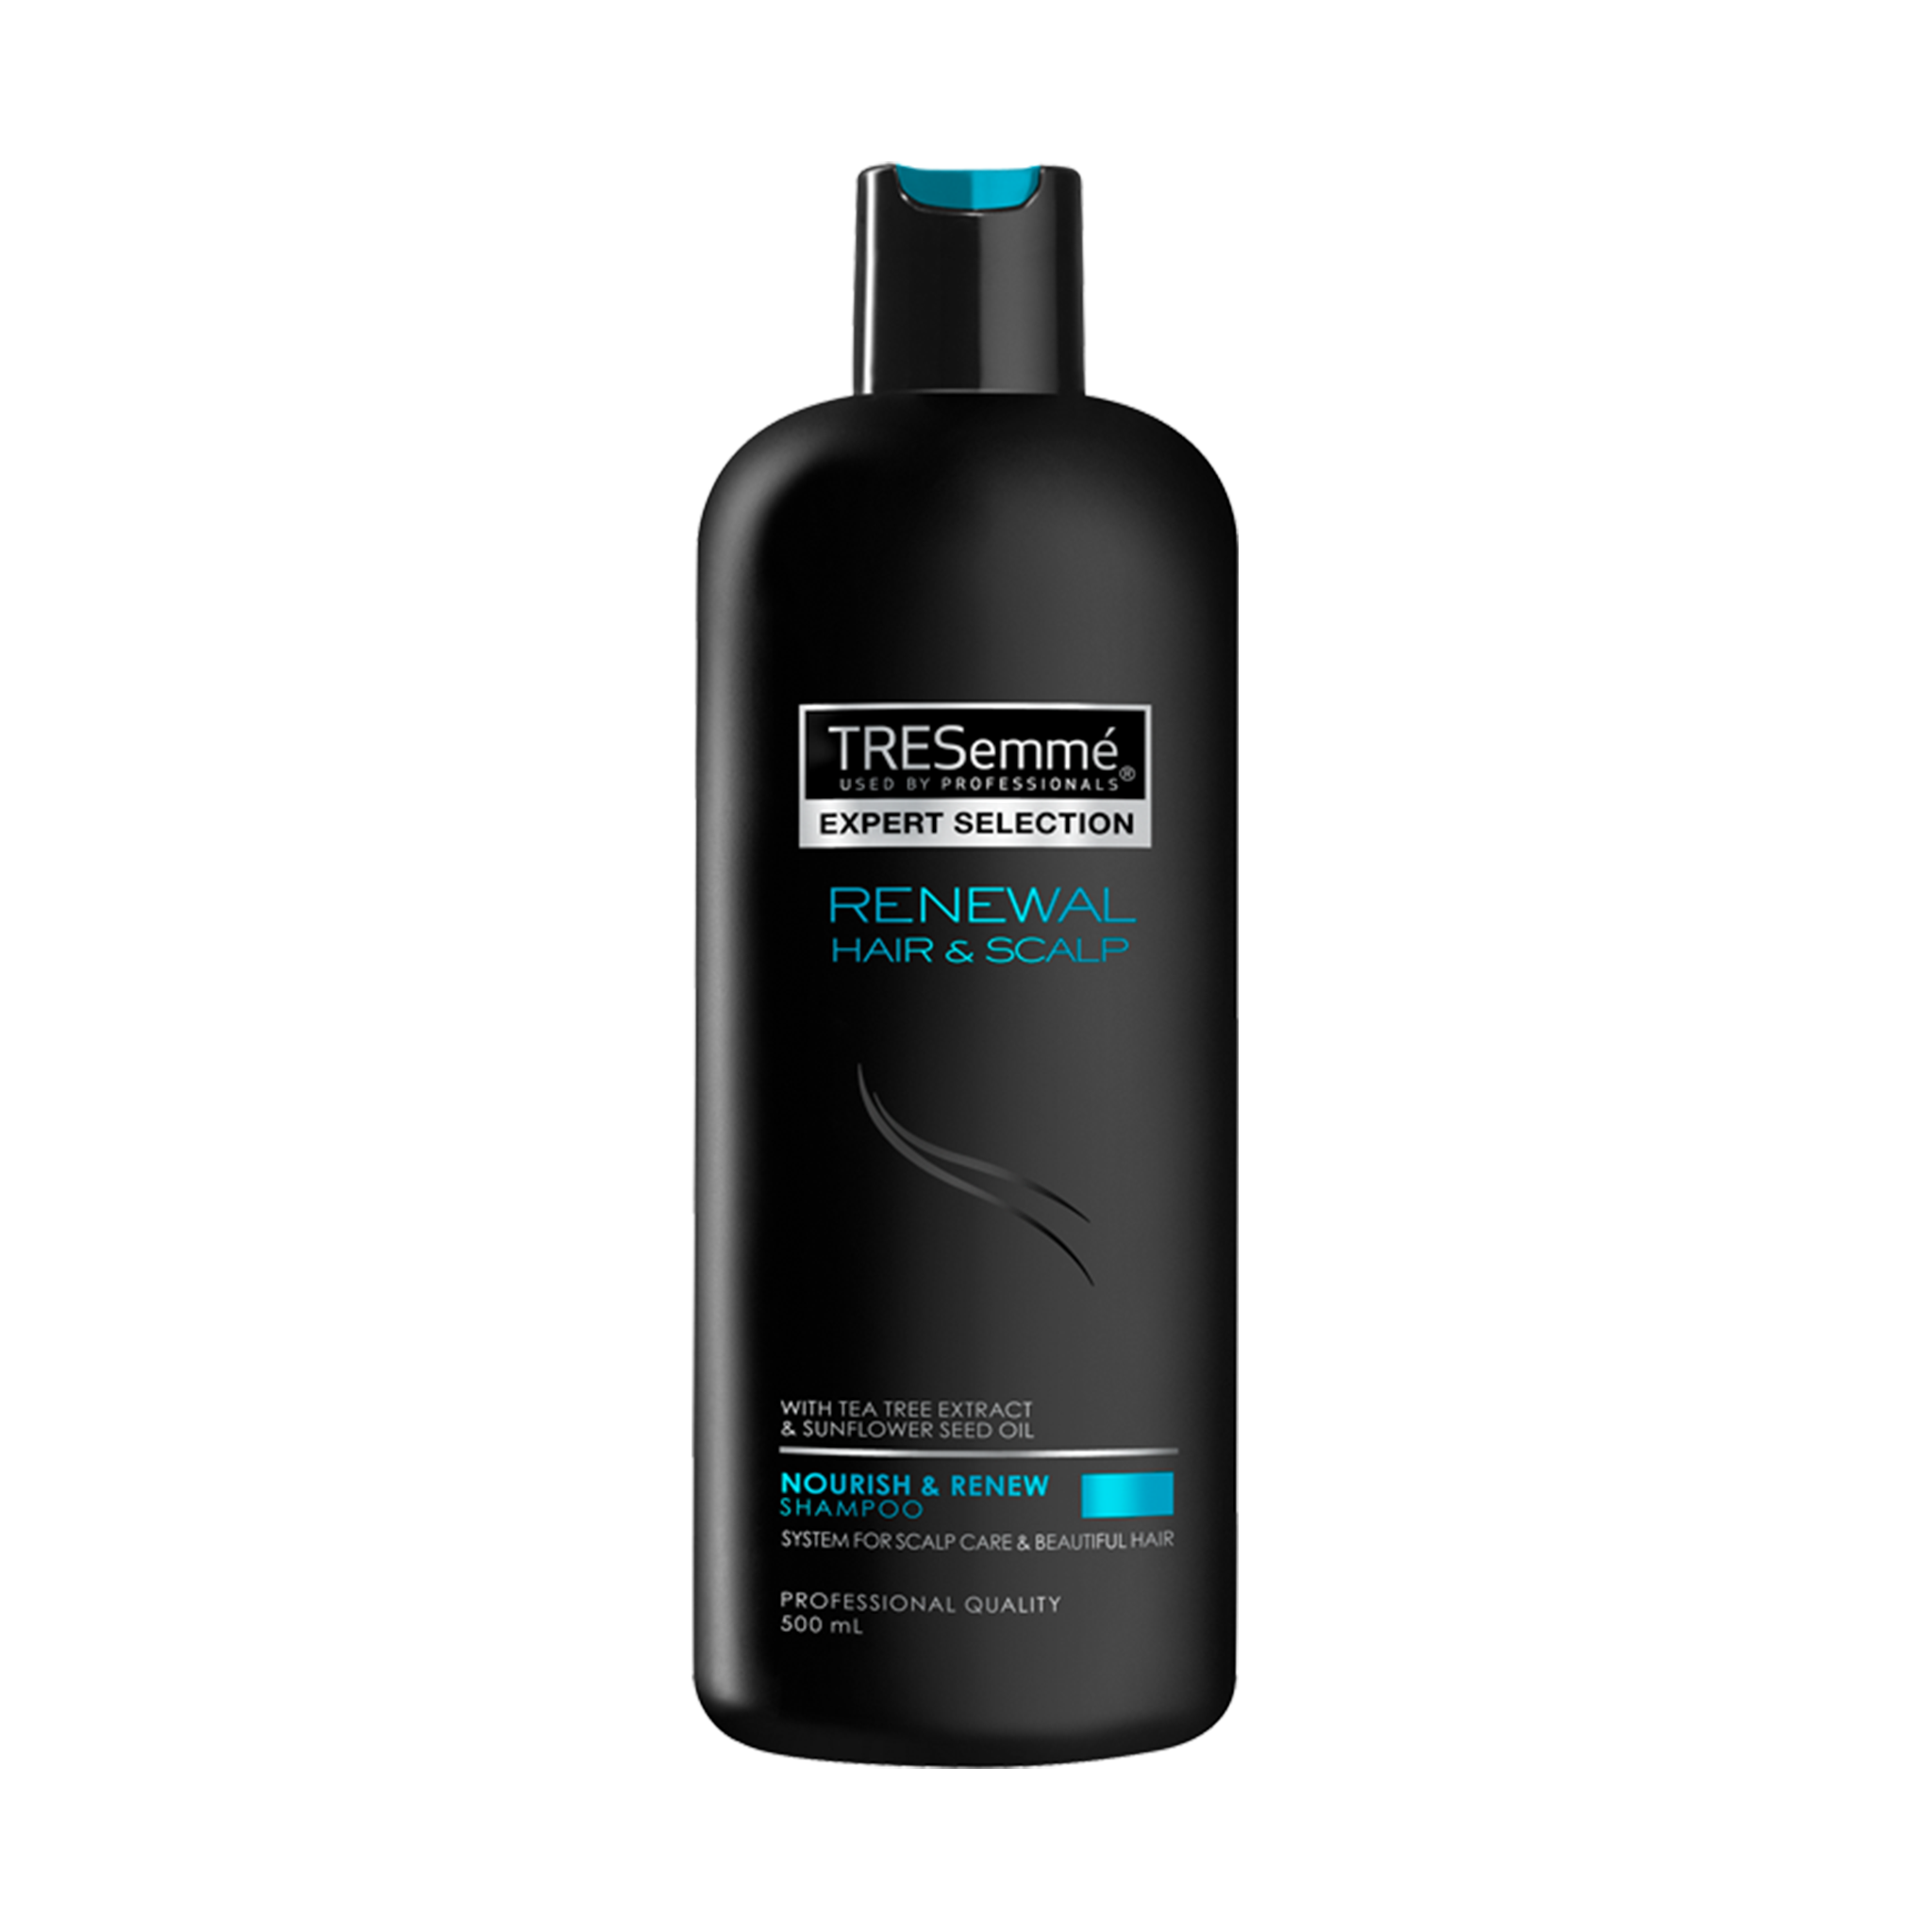 how to close tresemme shampoo bottle